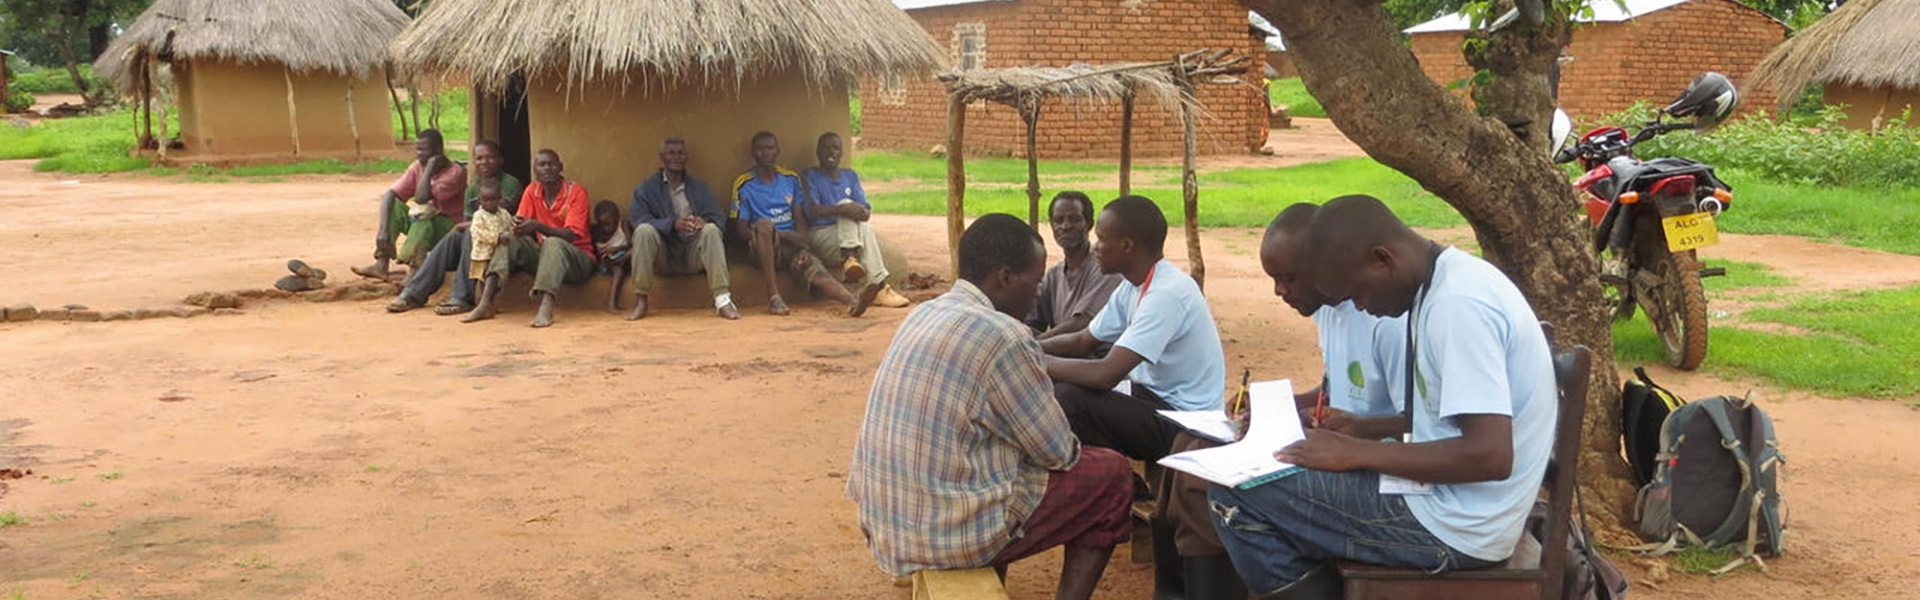 Group of Zambian farmers gathered on benches doing paperwork